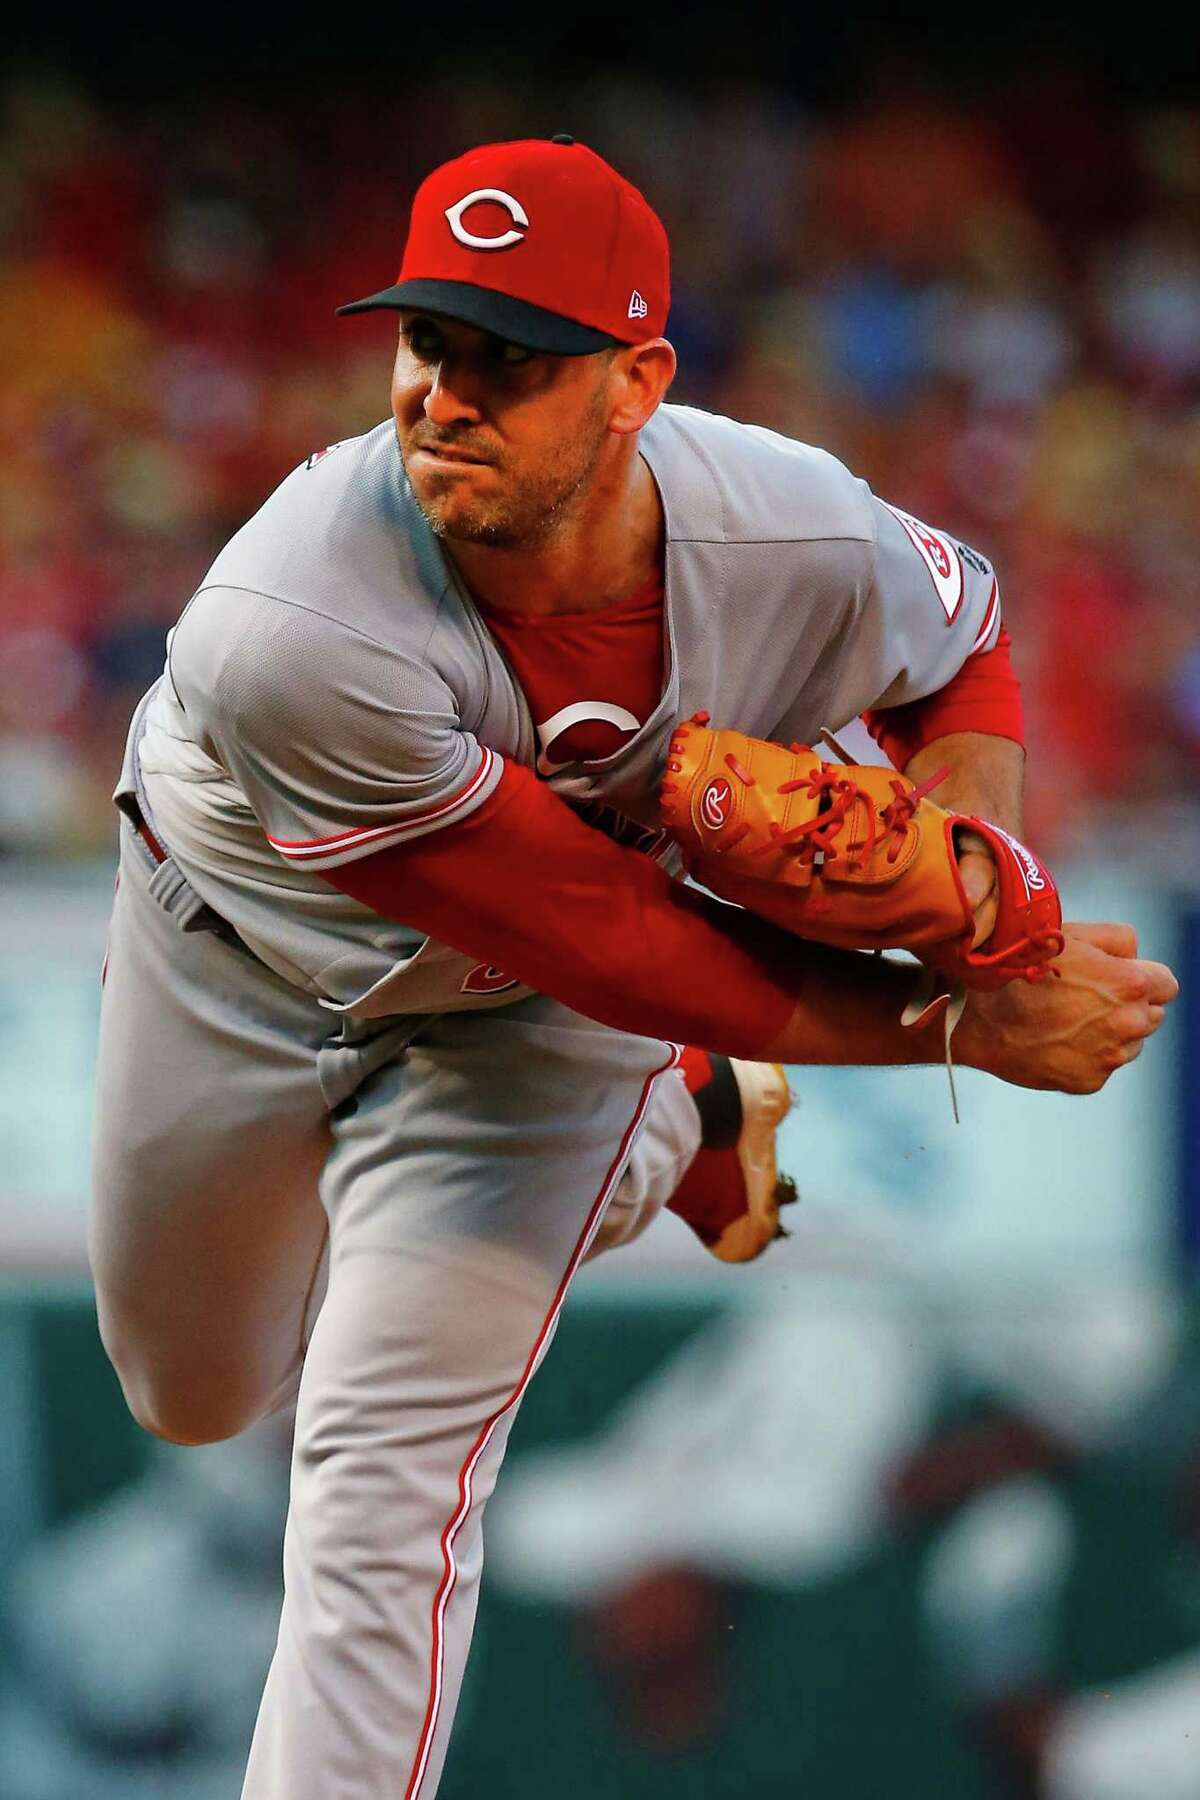 ST. LOUIS, MO - JULY 13: Matt Harvey #32 of the Cincinnati Reds pitches against the St. Louis Cardinals in the first inning at Busch Stadium on July 13, 2018 in St. Louis, Missouri. (Photo by Dilip Vishwanat/Getty Images)